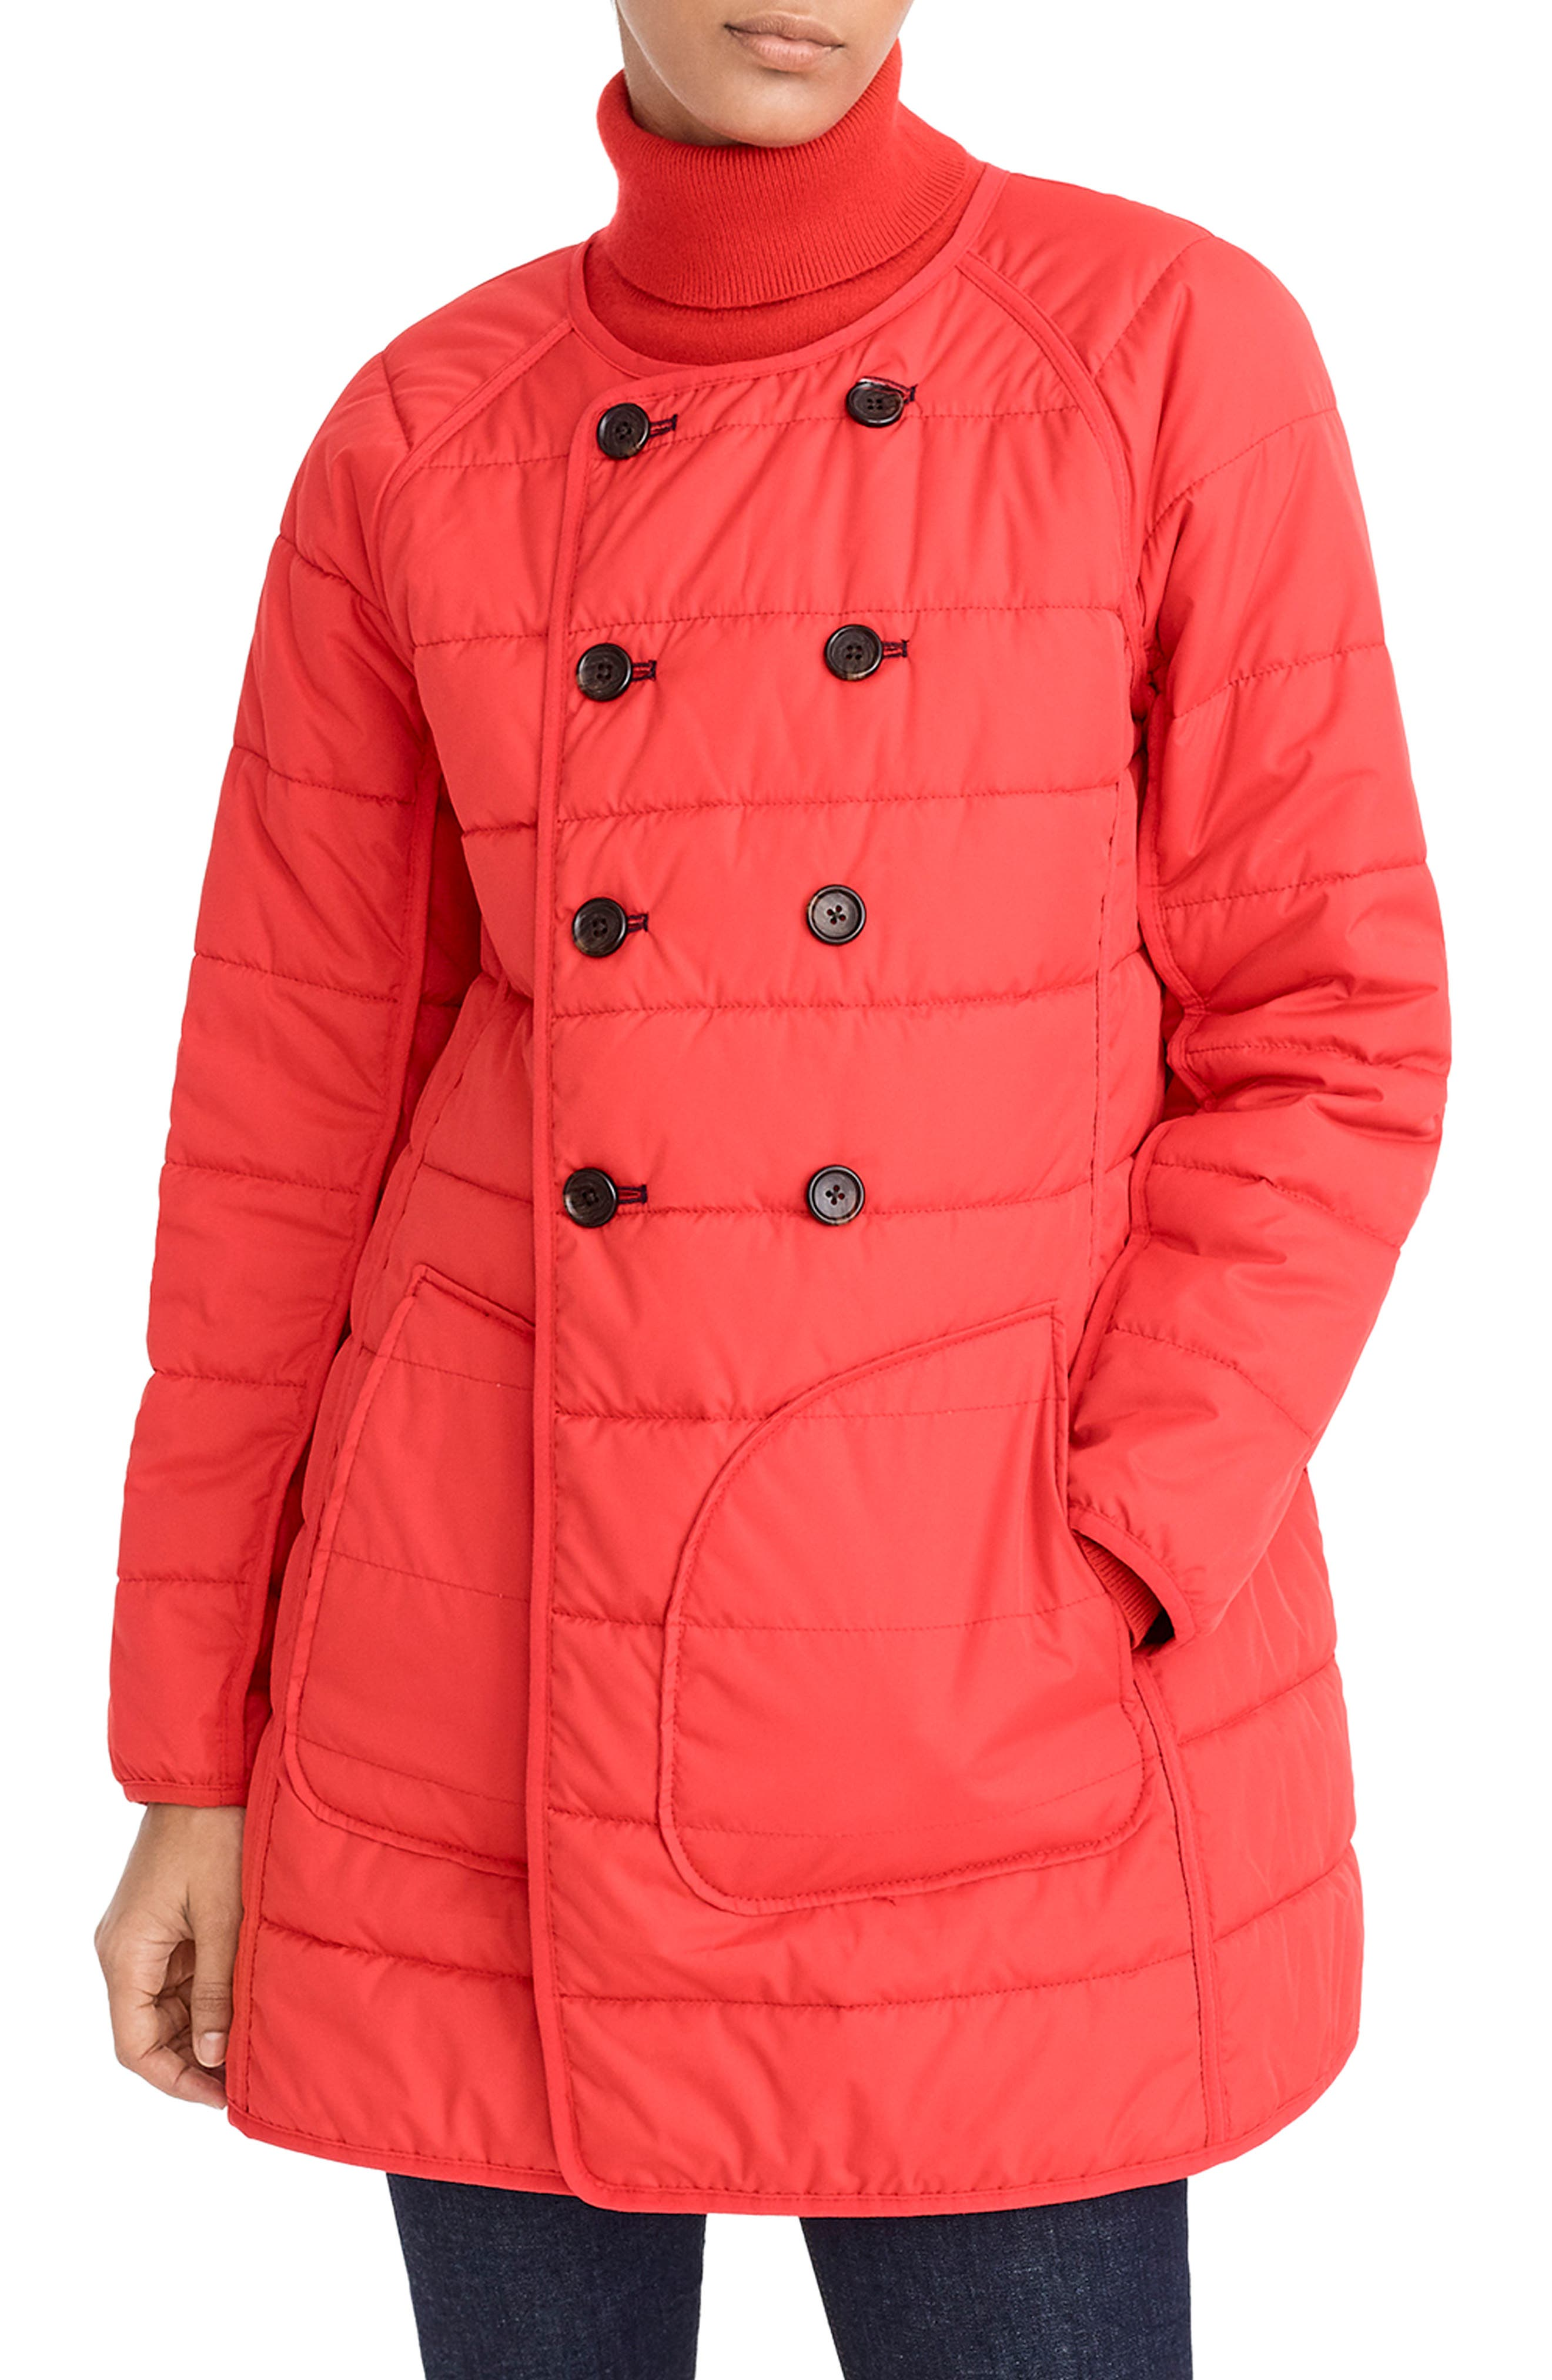 Reversible Puffer Jacket,                             Alternate thumbnail 2, color,                             400